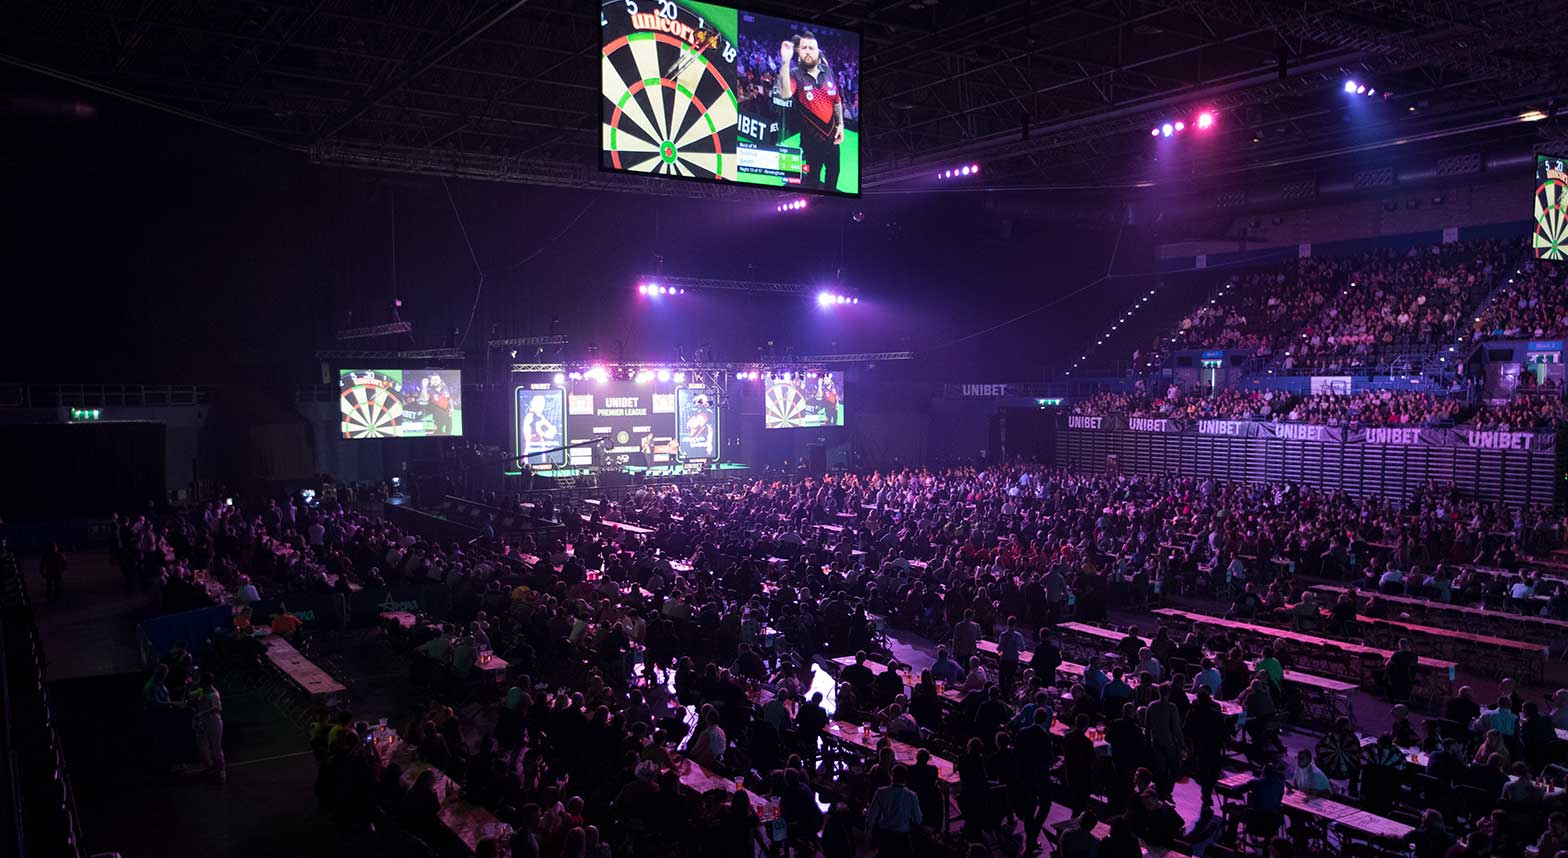 premier-league-darts-arena.jpg